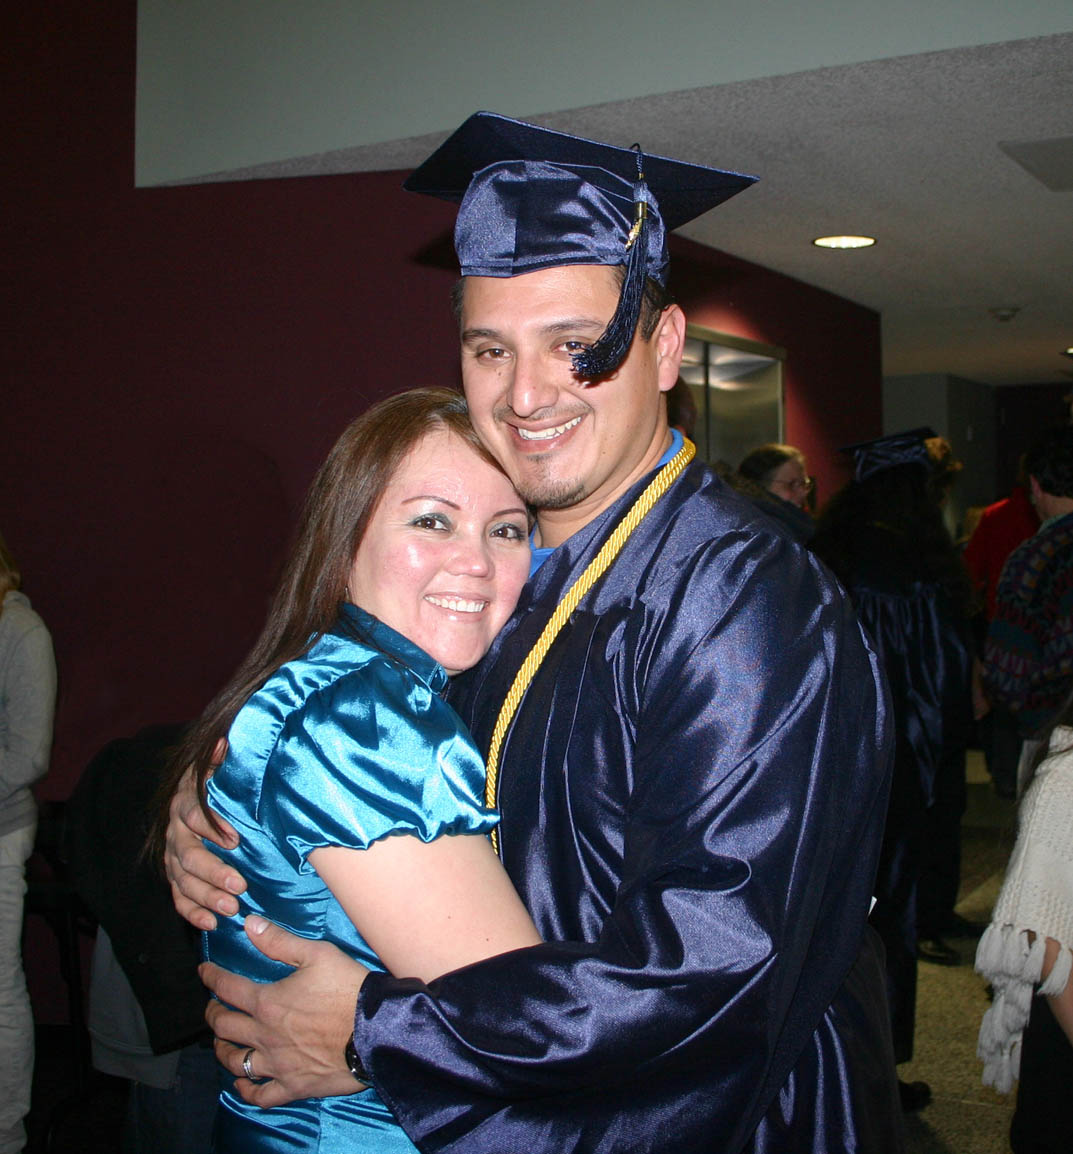 Click to enlarge,  Miguel Olvera (left) gets a congratulatory hug from his wife, Ereniva, following Central Carolina Community College's Adult High School and General Educational Development programs graduation Thursday, Jan. 19, in the Dennis A. Wicker Civic Center. Olvera earned a GED and plans to continue his education. Ereniva is a student in the college's English as a second language program.